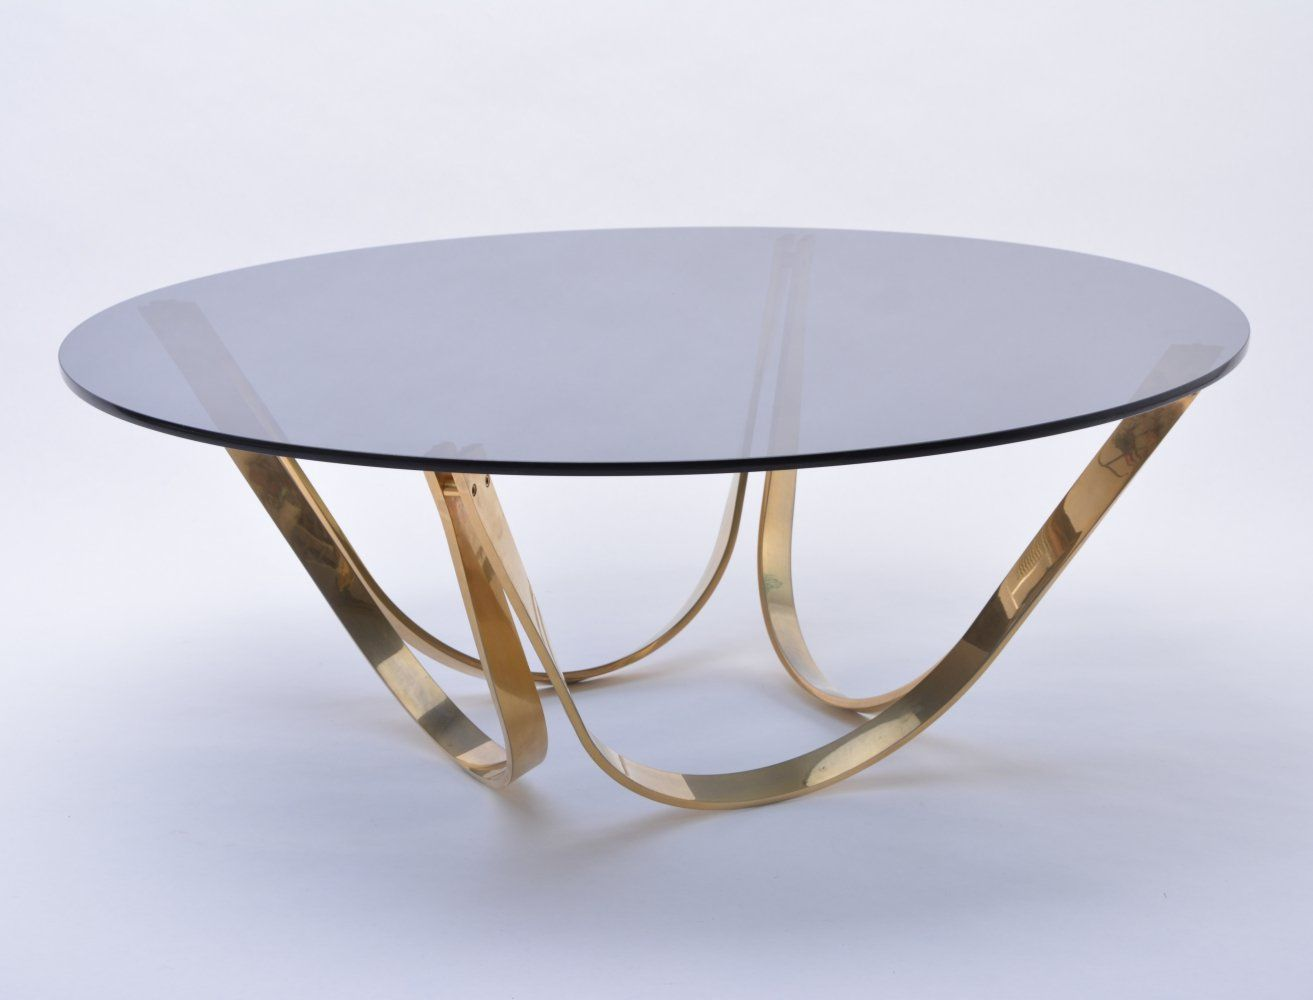 - For Sale: Mid Century Modern Coffee Table By Roger Sprunger For